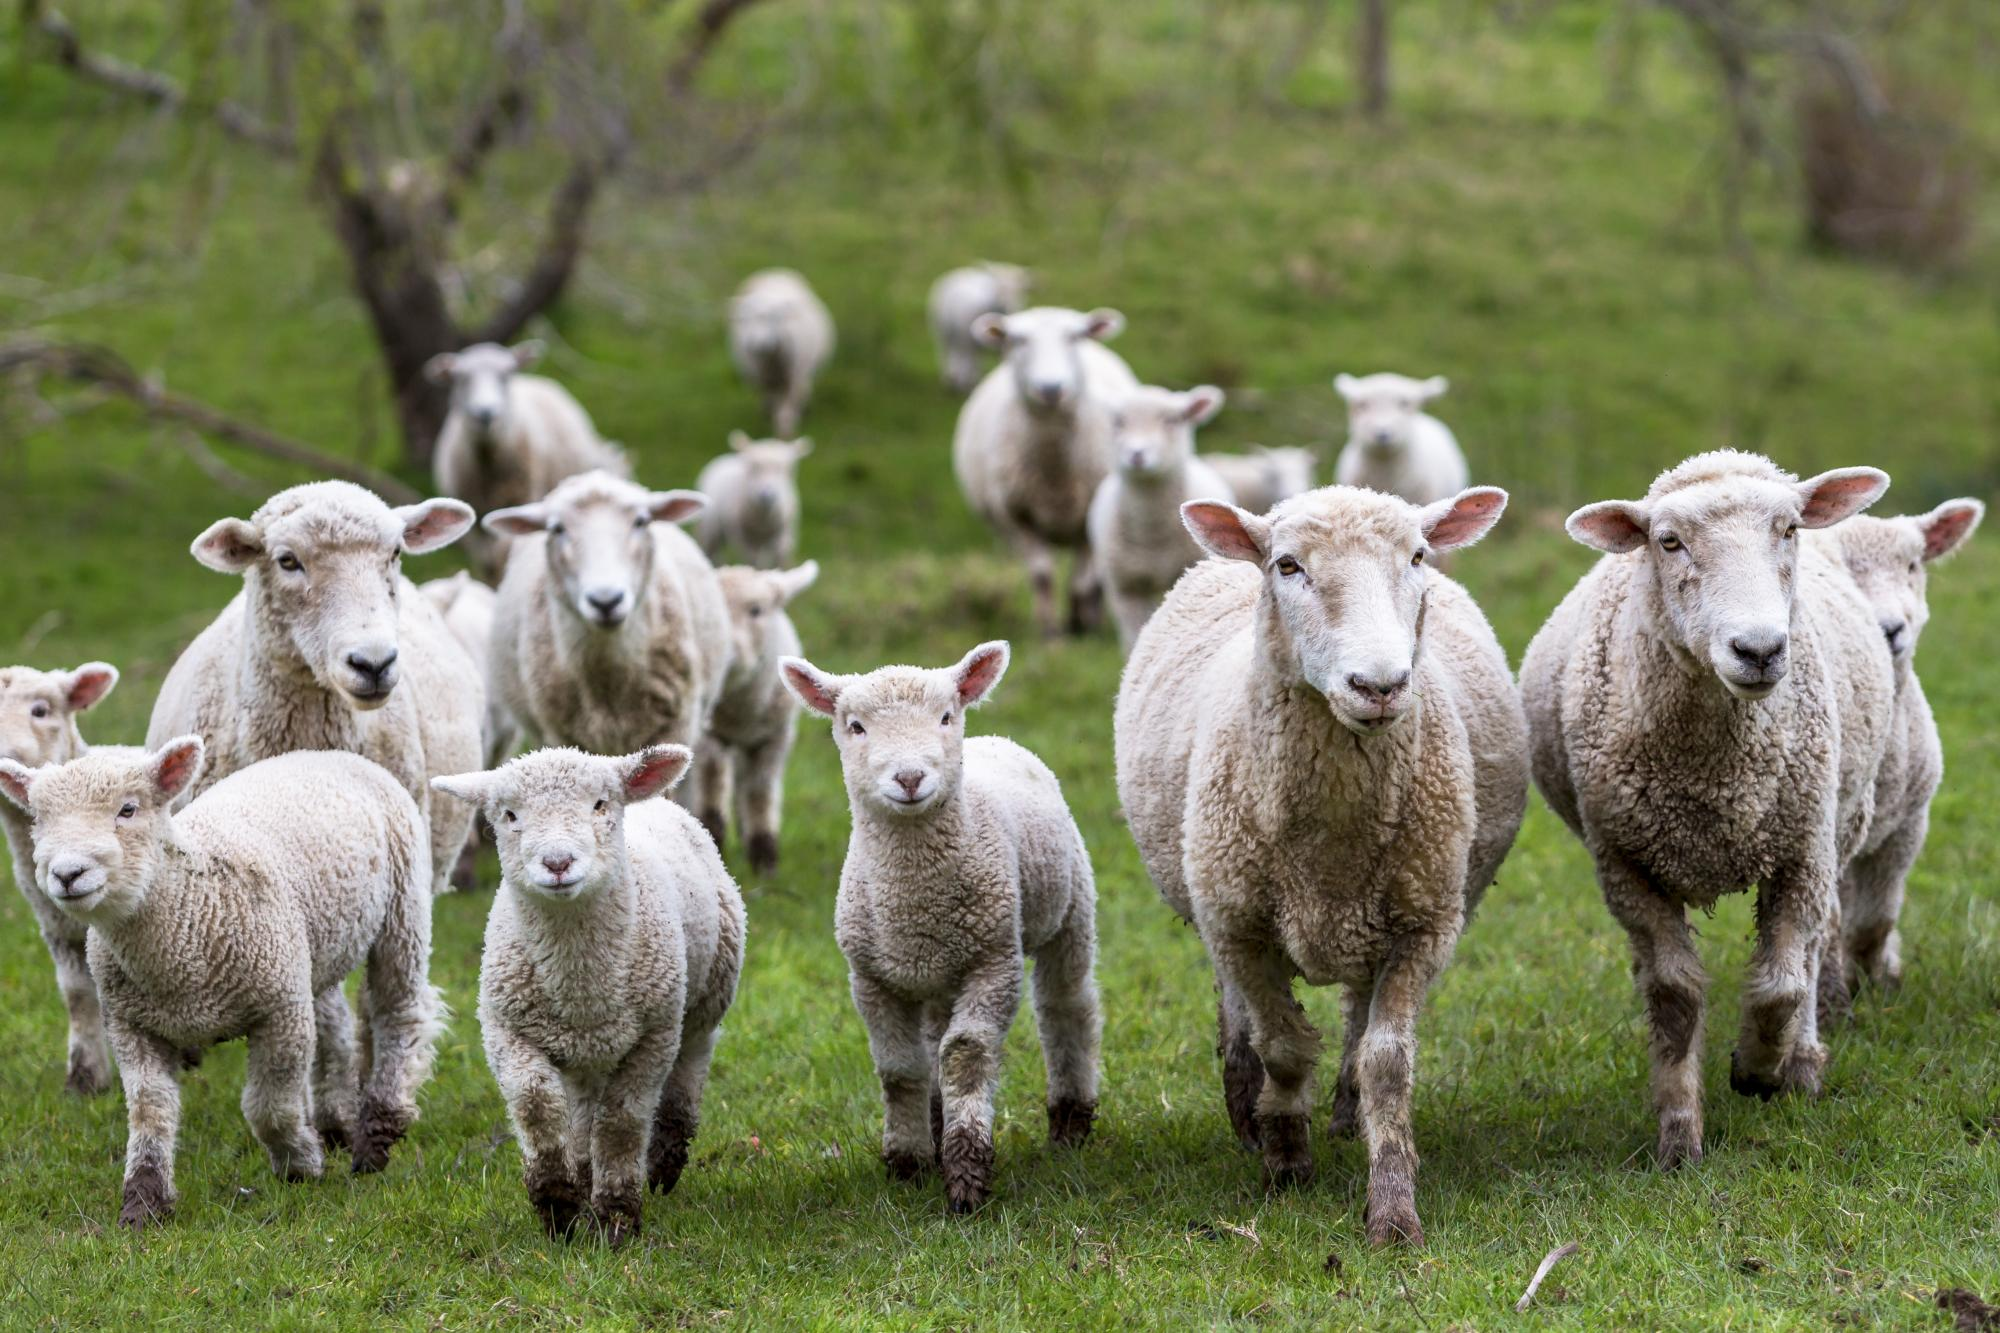 Group of sheep in field